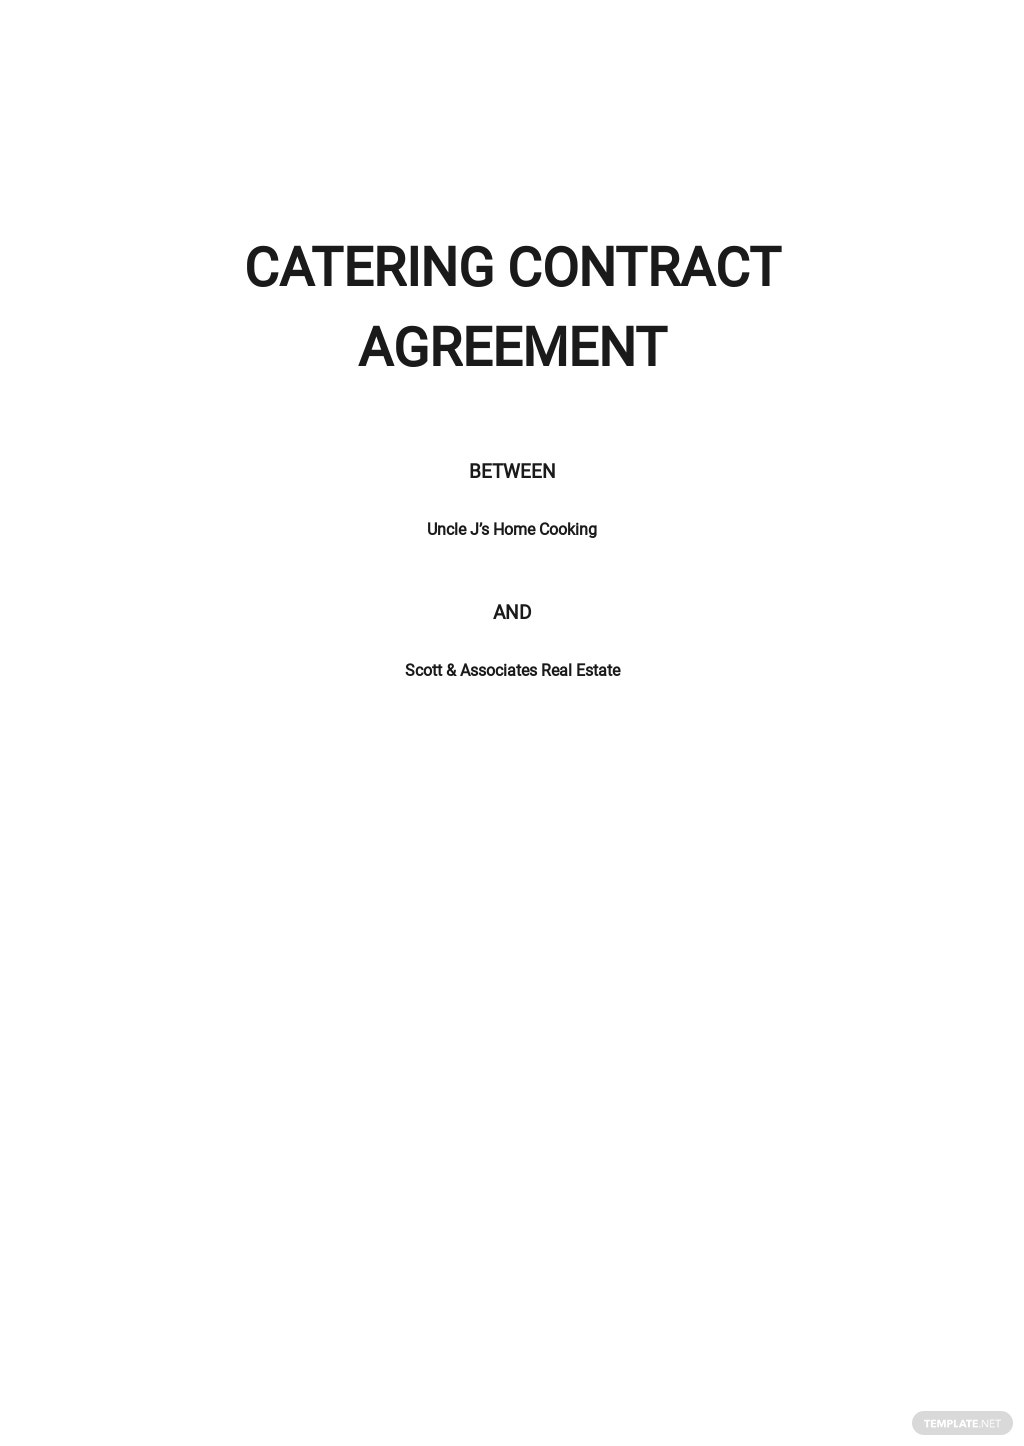 Catering Contract Agreement Template.jpe